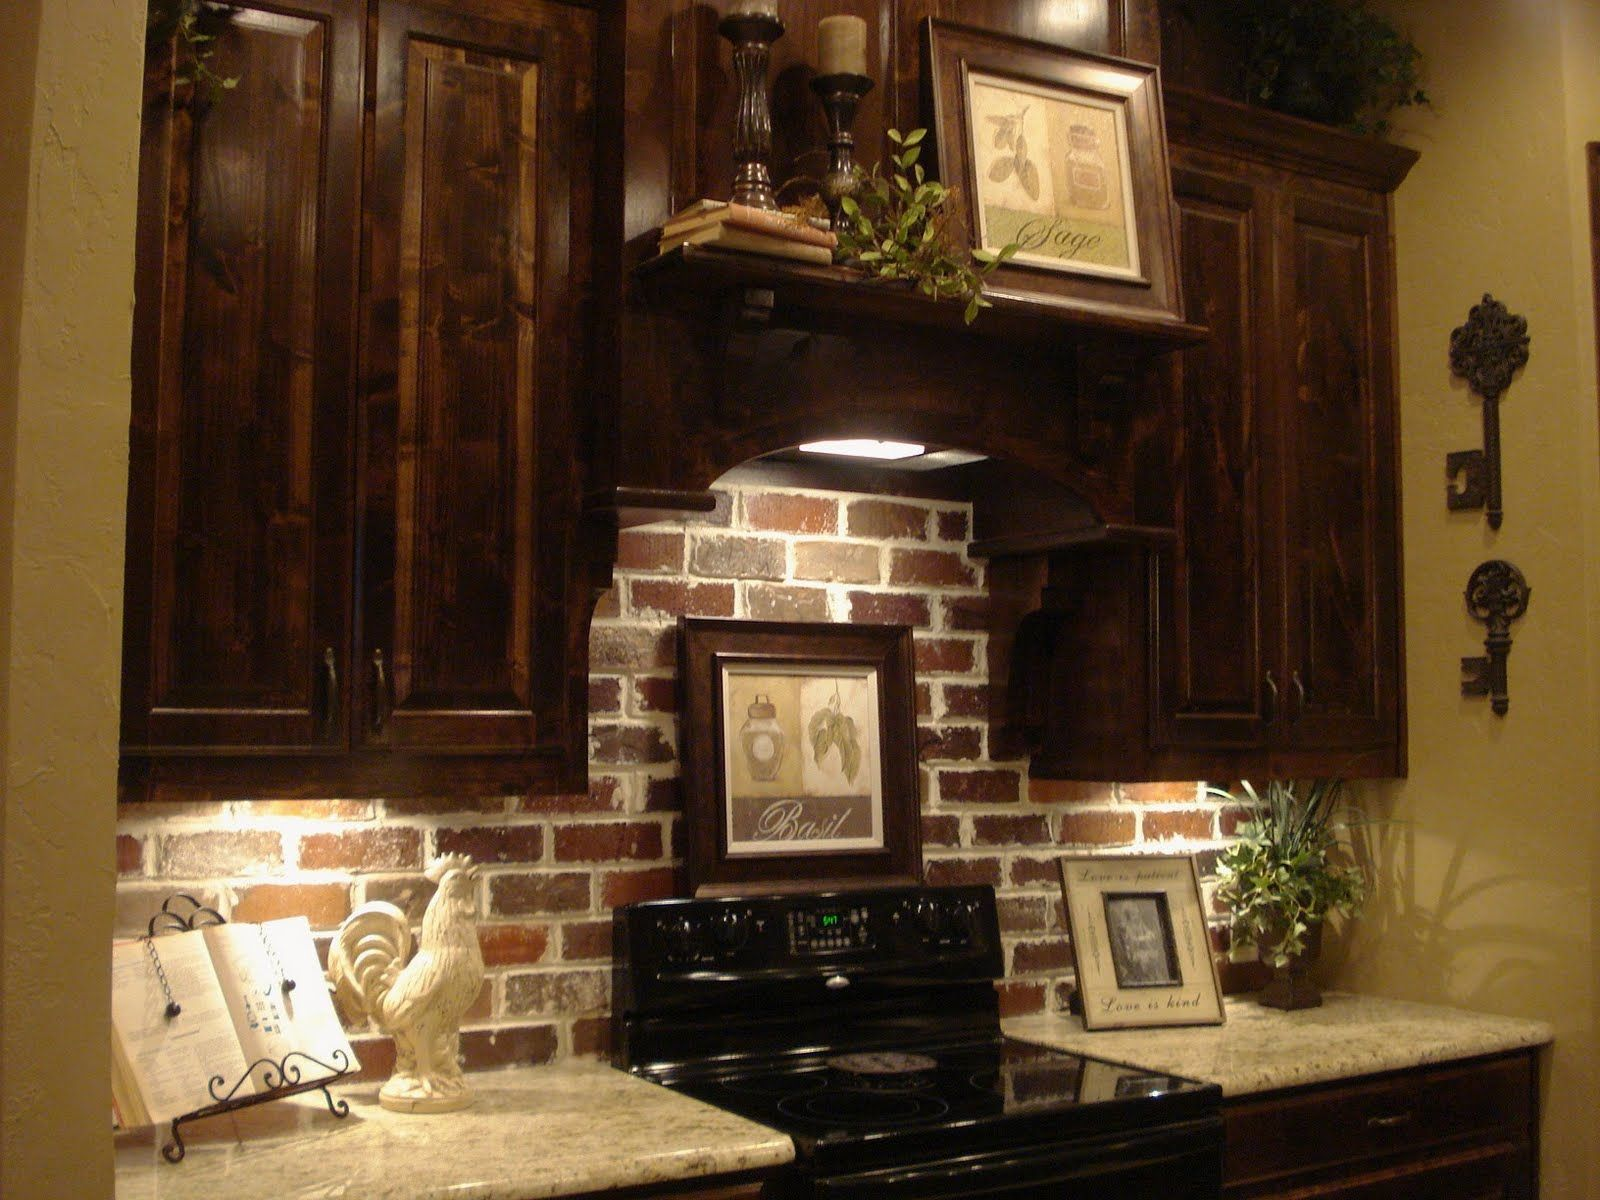 Brick Backsplash In Kitchen Valance Curtains For Dark Cabinets Yes Future The